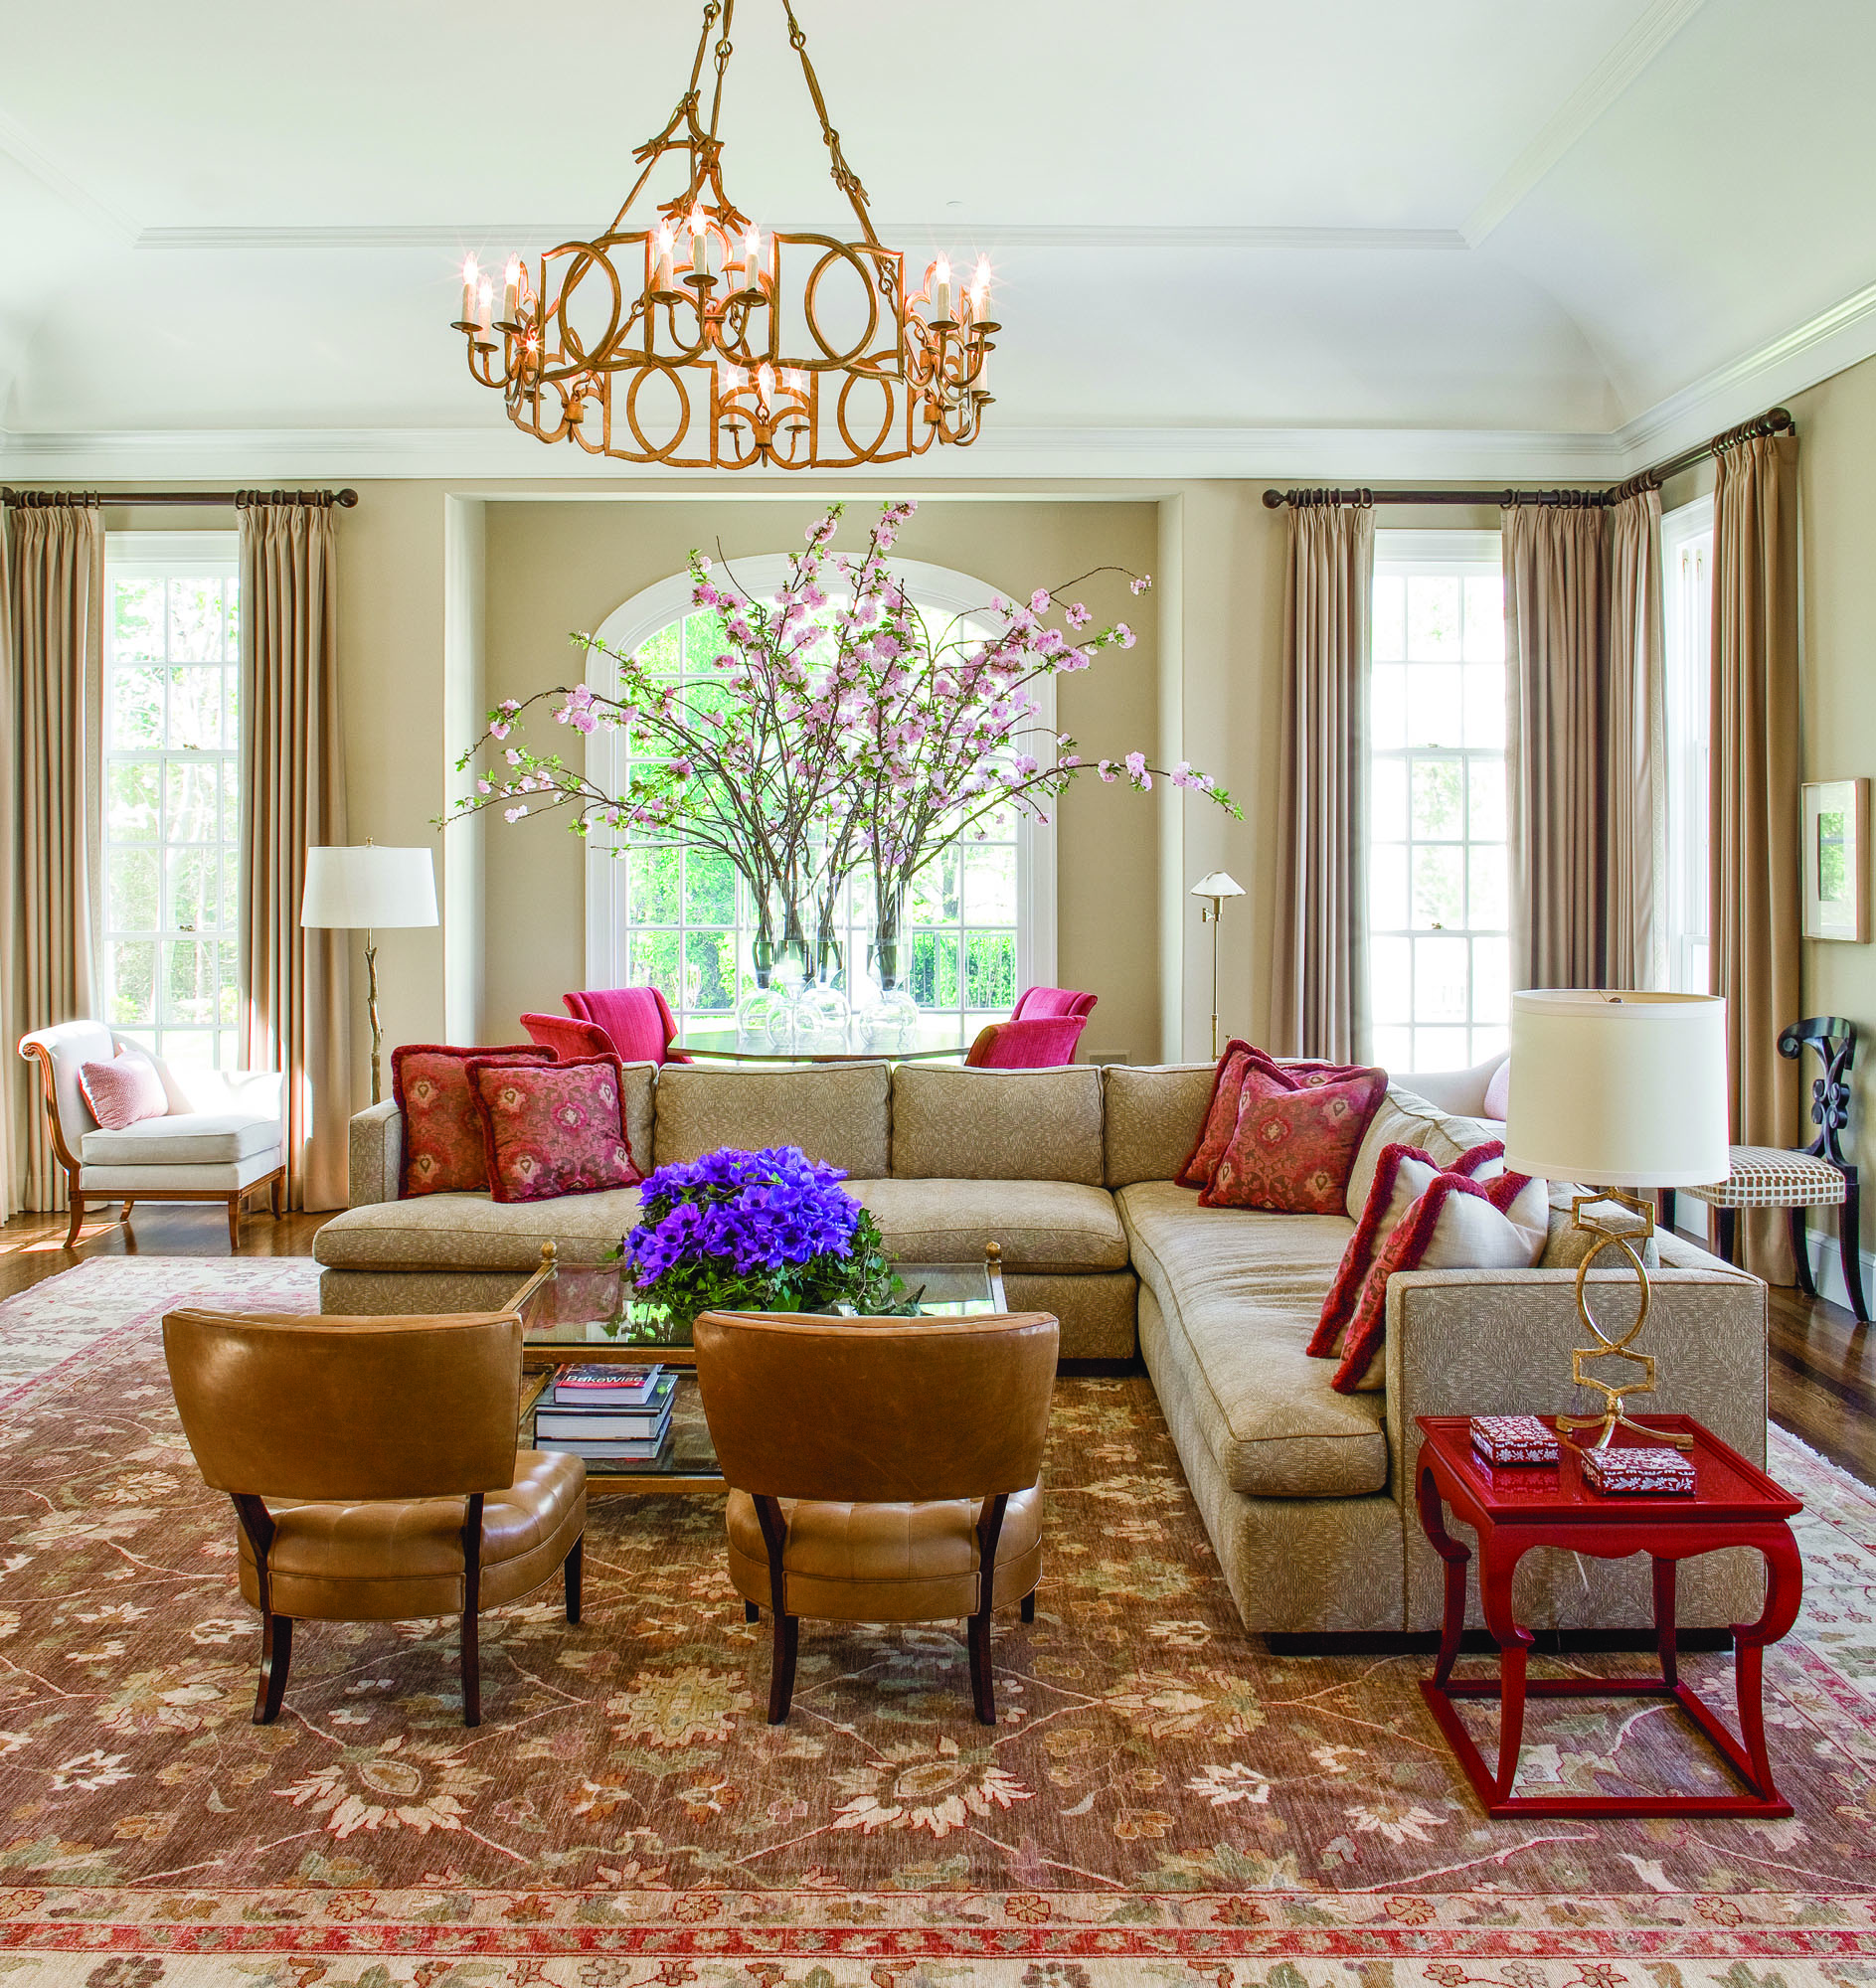 Michael Carter of Carter & Company Interior Design creates classical, yet contemporary, interiors for a New England Colonial.